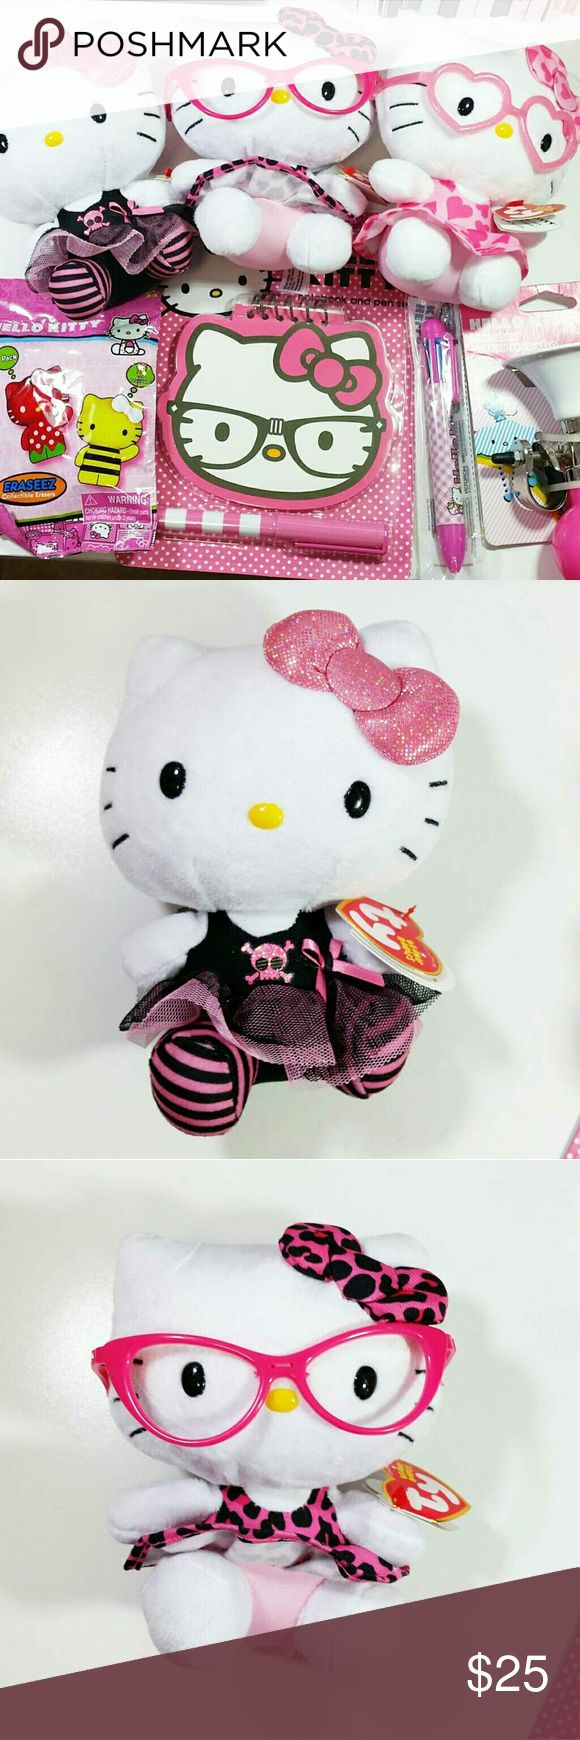 Adorable Hello Kitty Bundle This cute Hello kitty bundle includes 3 Hello kitty Beanie,  one bike horn, one multiple color pen, one set of erasers, and one hello kitty notebook & pen set. Hello Kitty Other